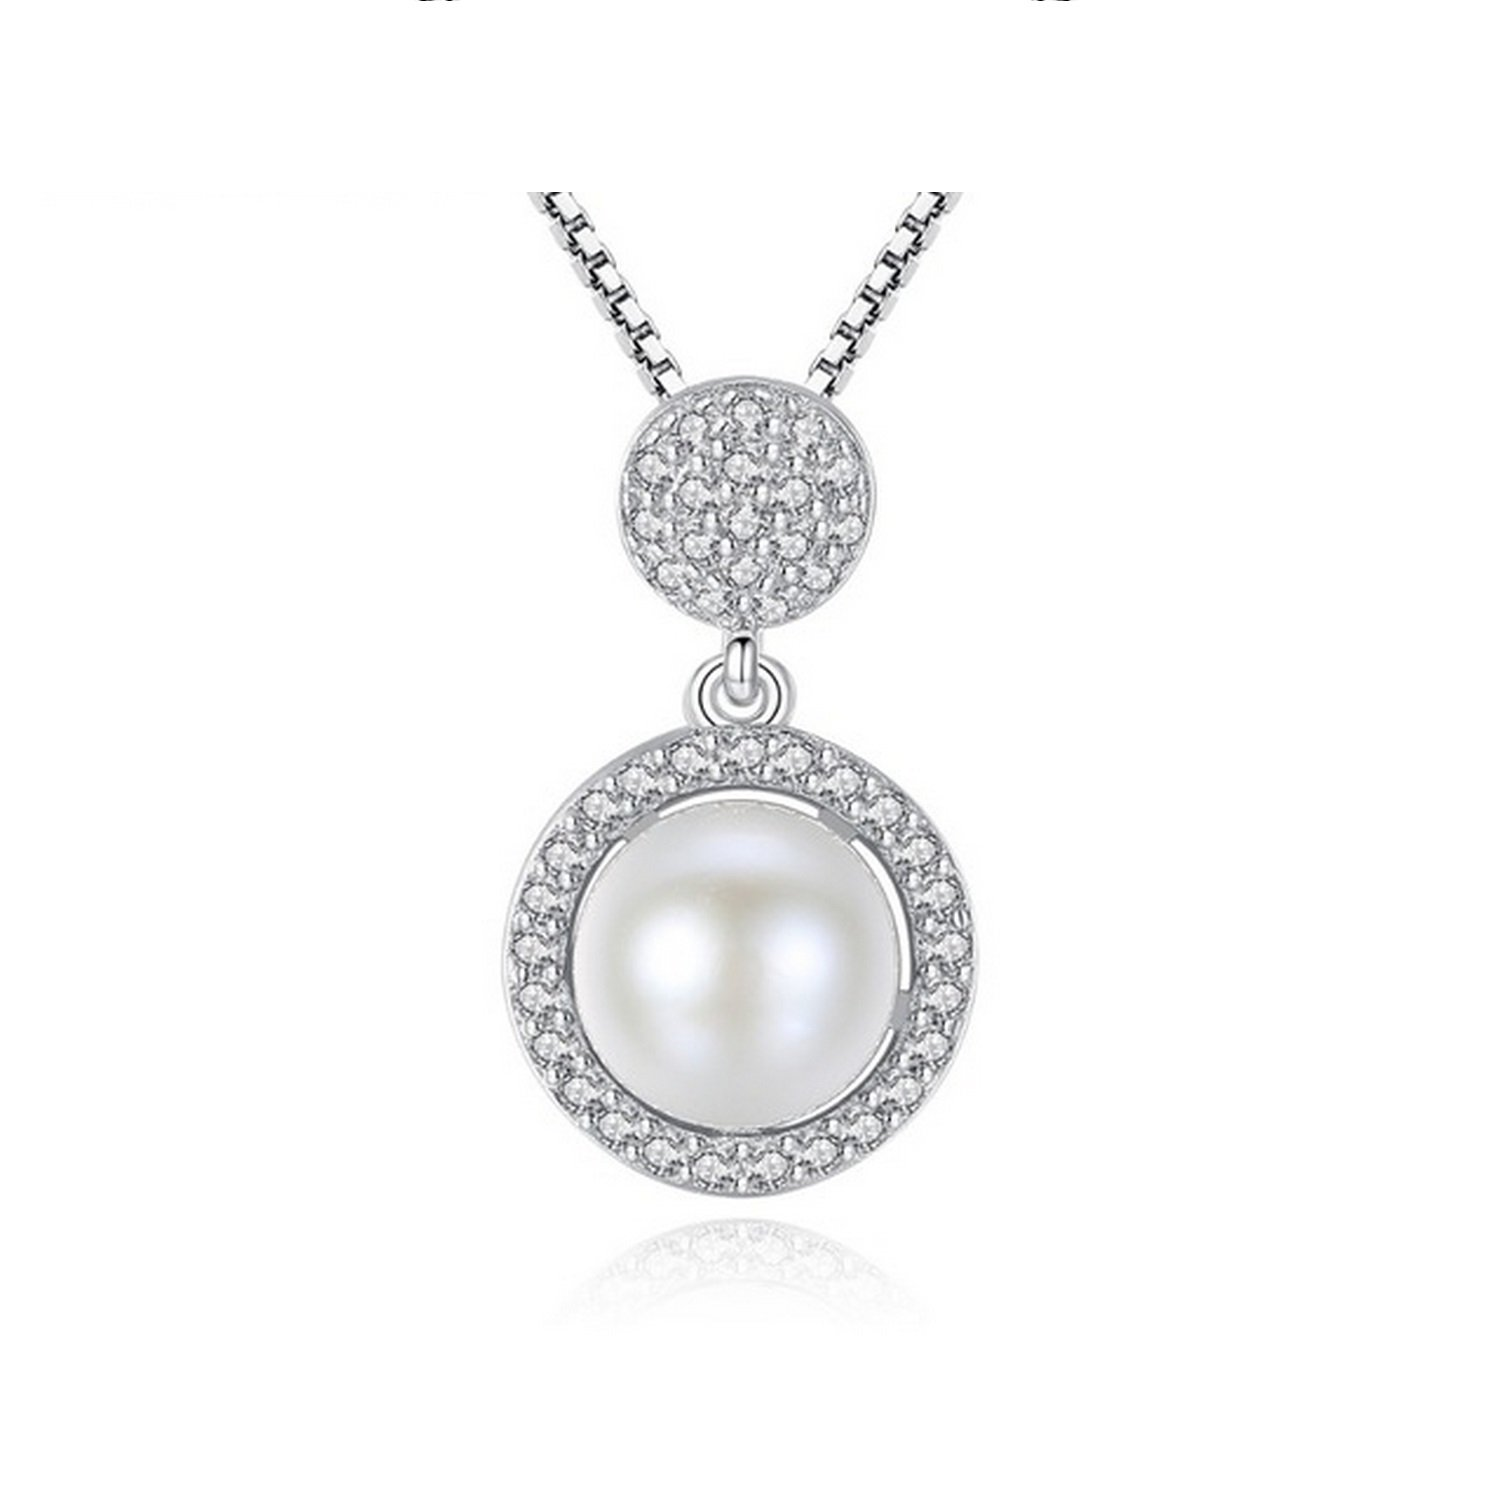 CS-DB Jewelry Silver Jewelry Fashion White Pearl Chain Charm Pendants Necklaces